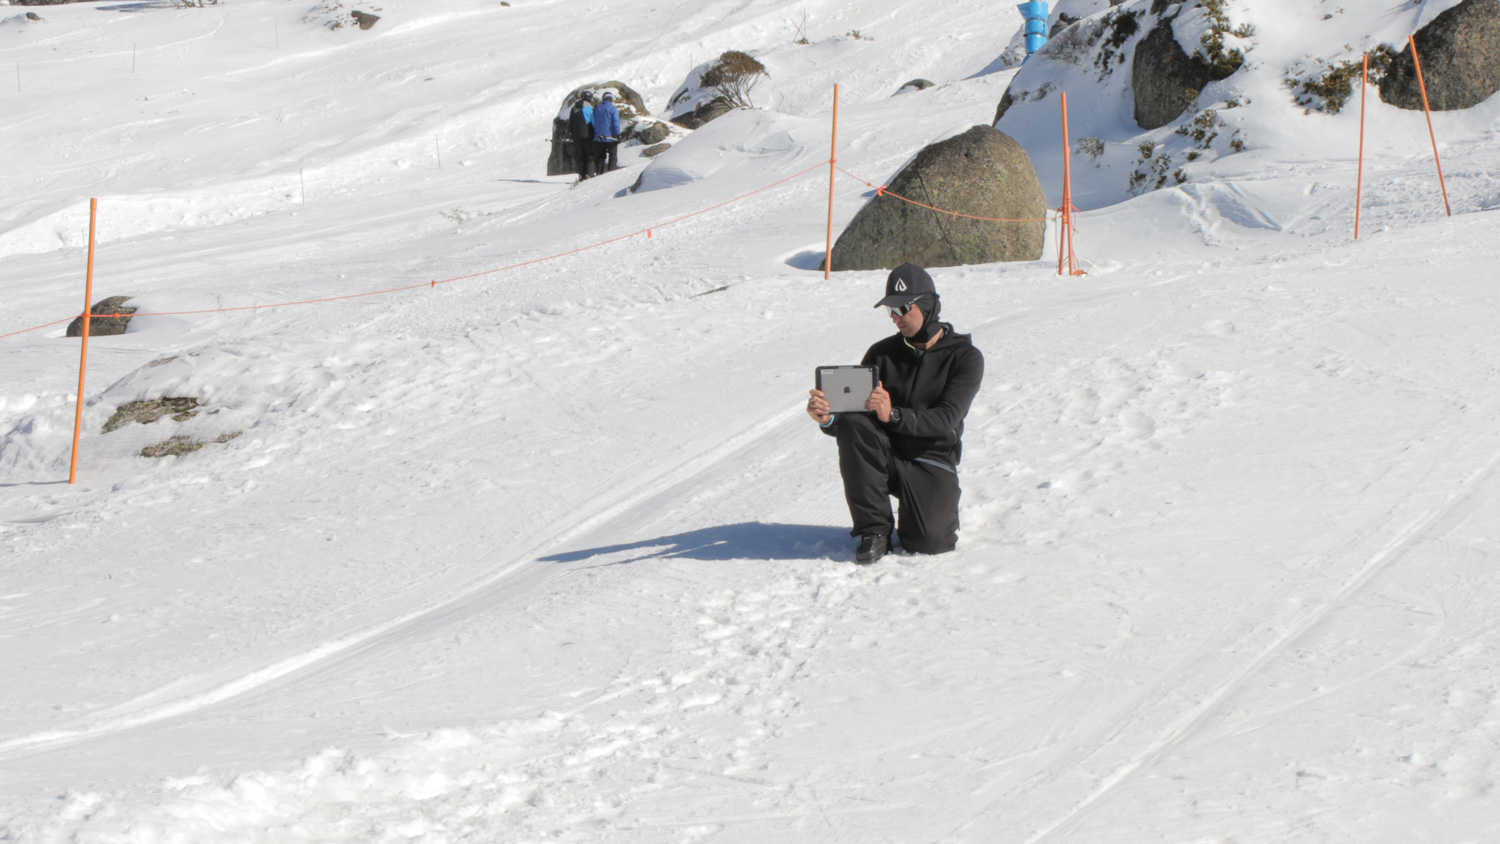 Expert advice for aspiring mogul skiers from Peter McNiel Image